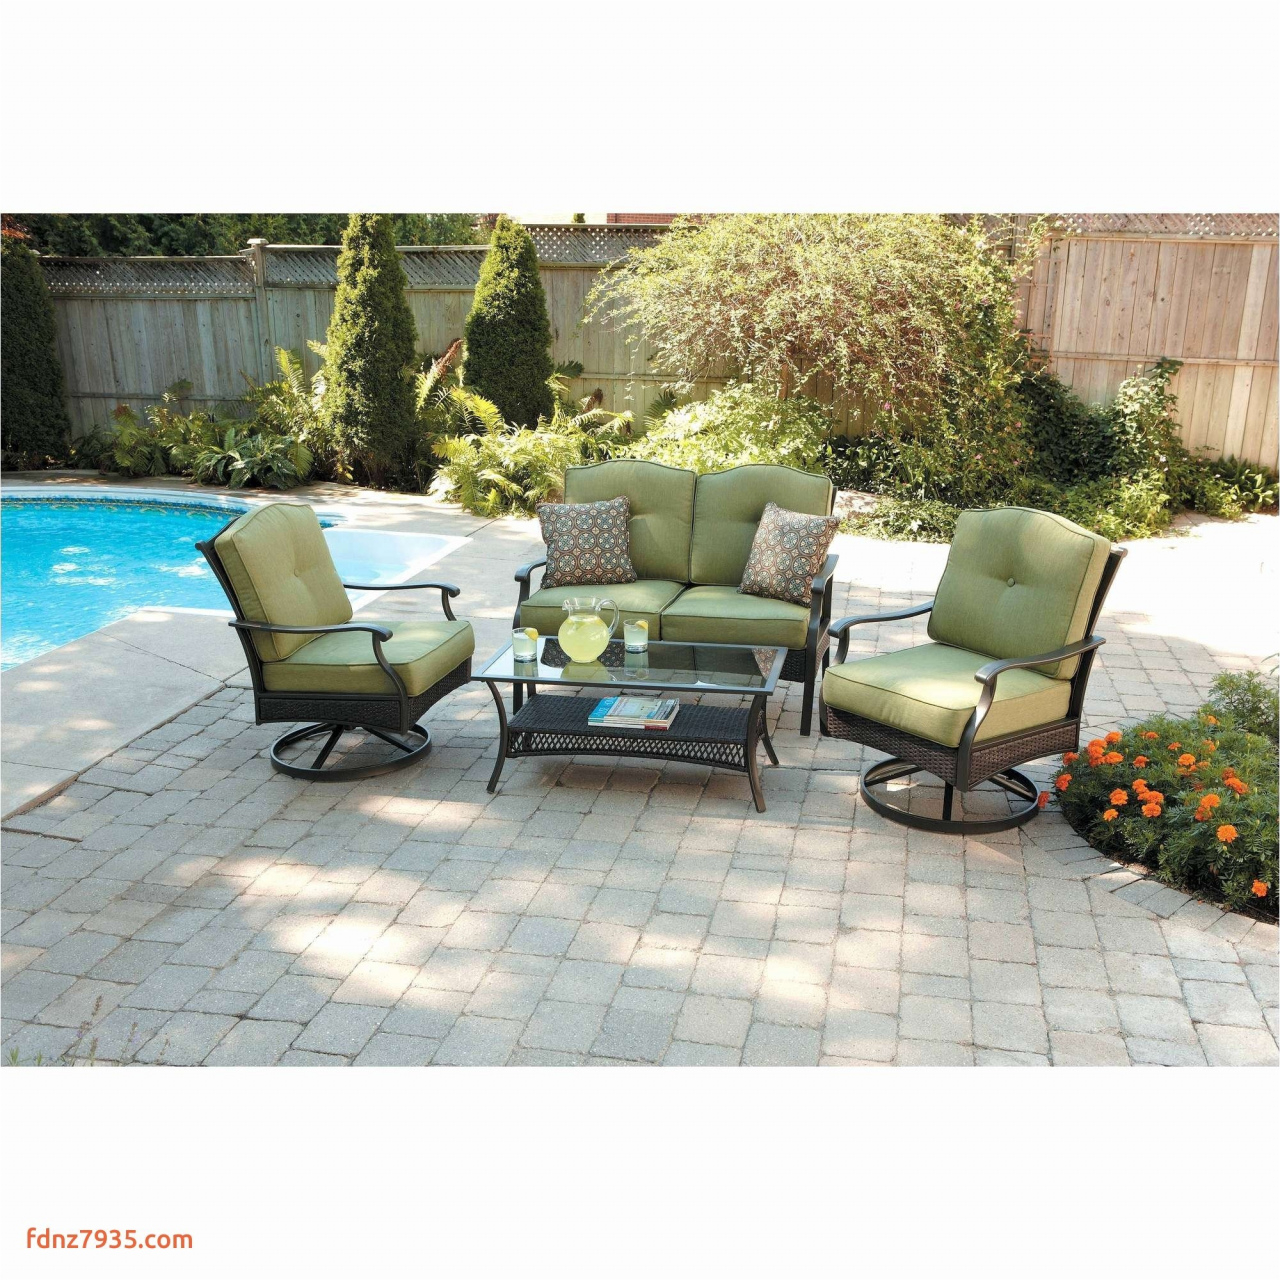 Patio Furniture Feet Replacement Near Me: Hampton Bay Patio Furniture Replacement Feet €� Fence Ideas